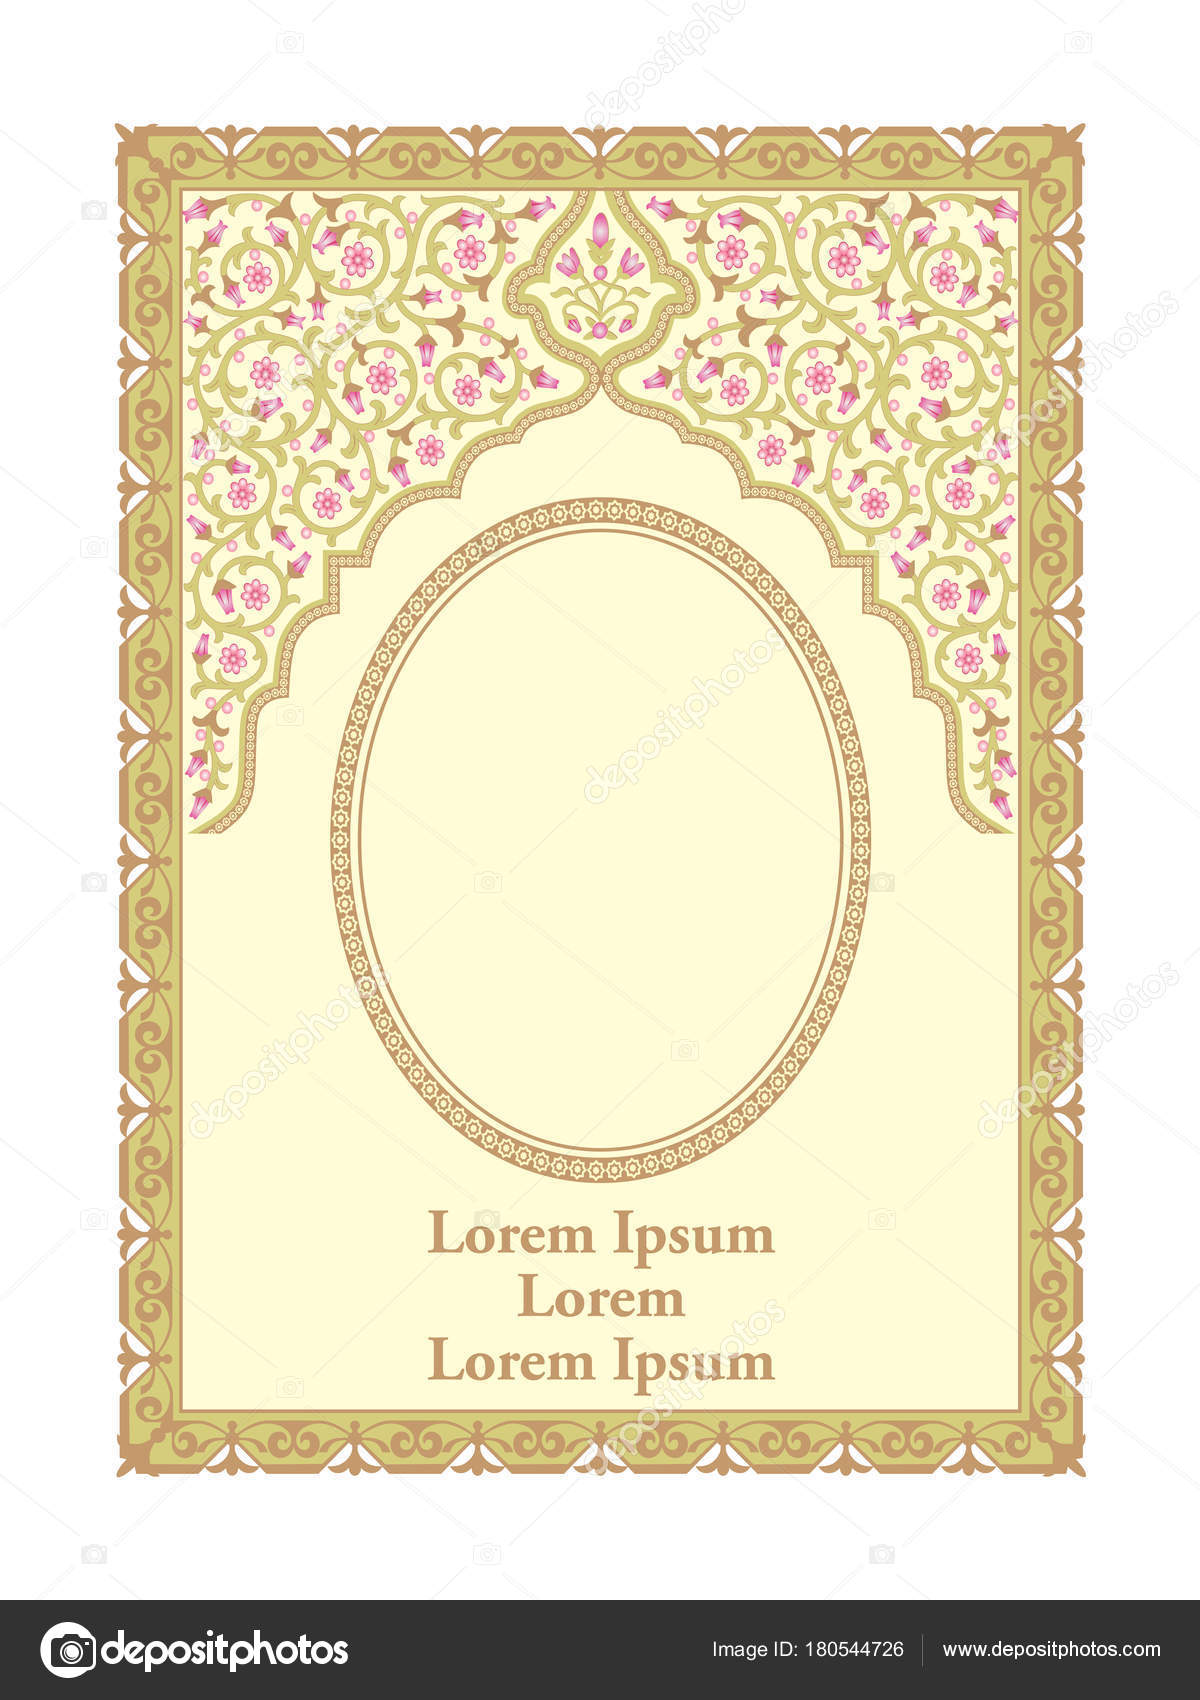 Islamic frame and border in floral ornament stock vector border and frame islamic floral ornament for prayer book cover vector by andipanggeleng altavistaventures Images